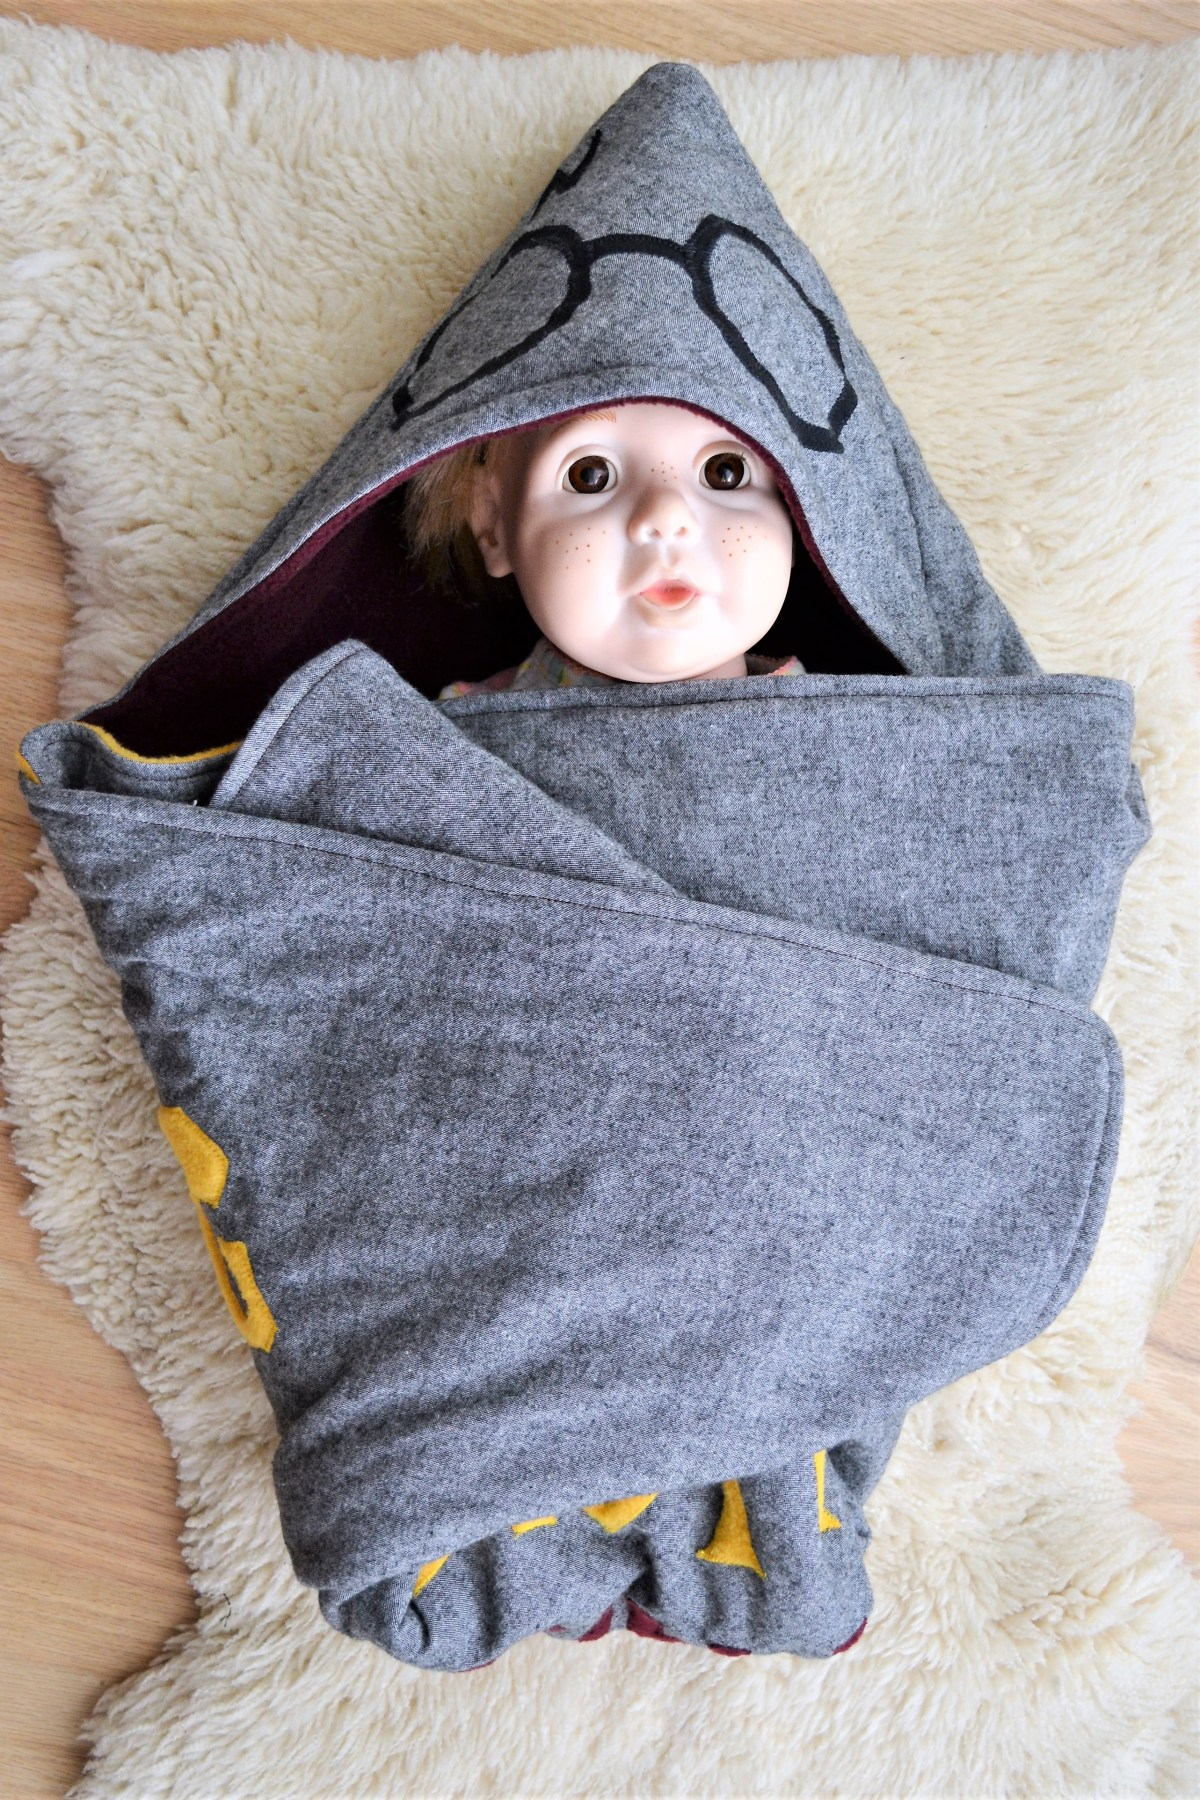 How to Make a Reversible Hooded Baby Blanket - baby model